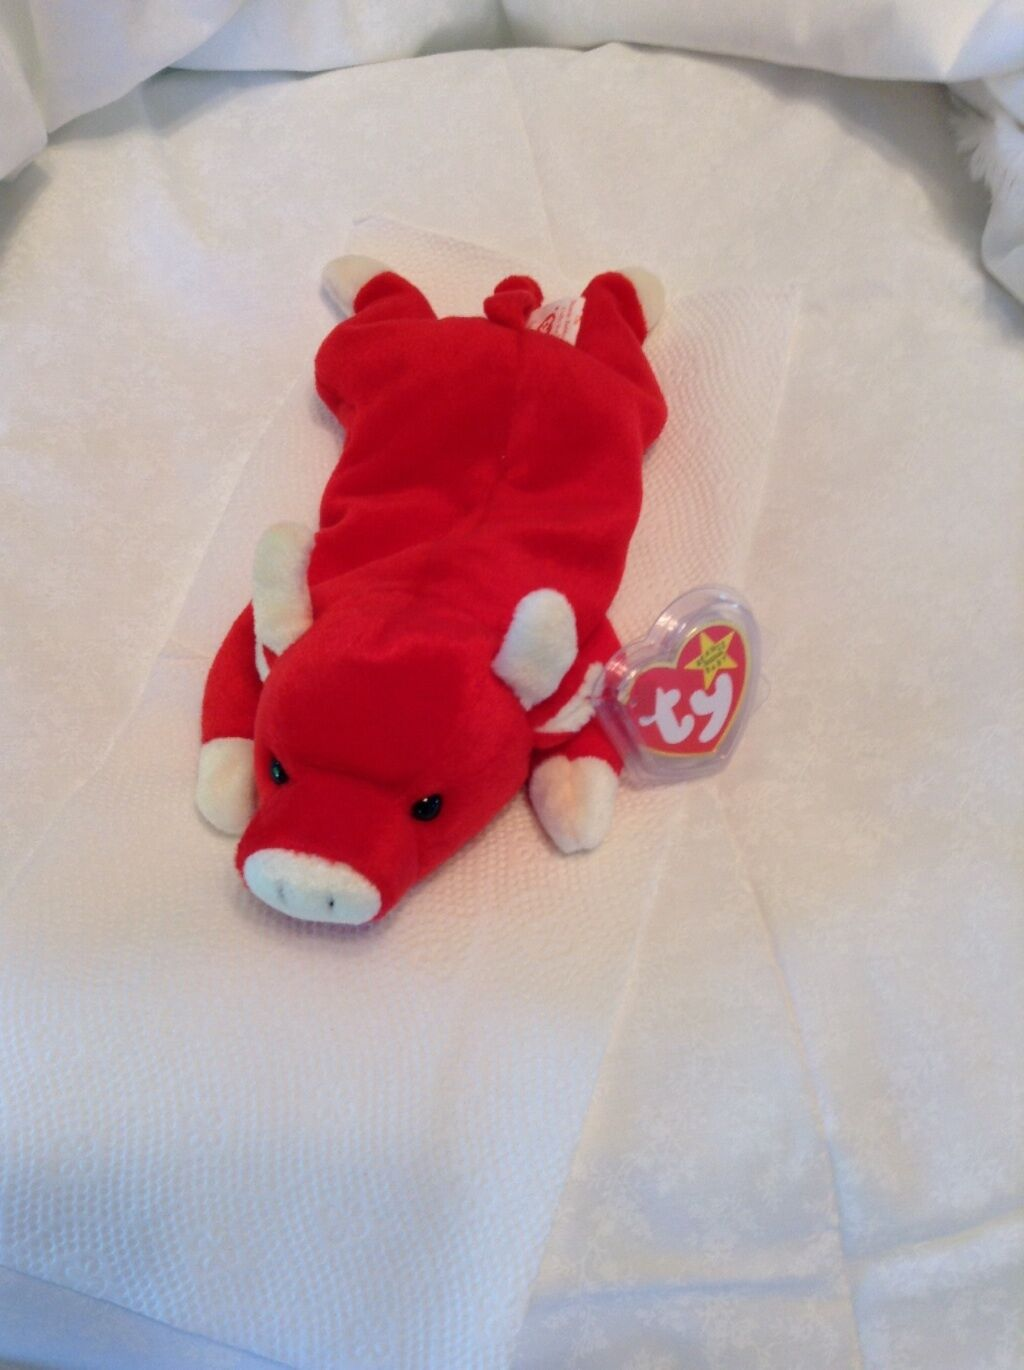 Snort the bull beanie baby with rare cream colord horns, ears, snout, and feet.